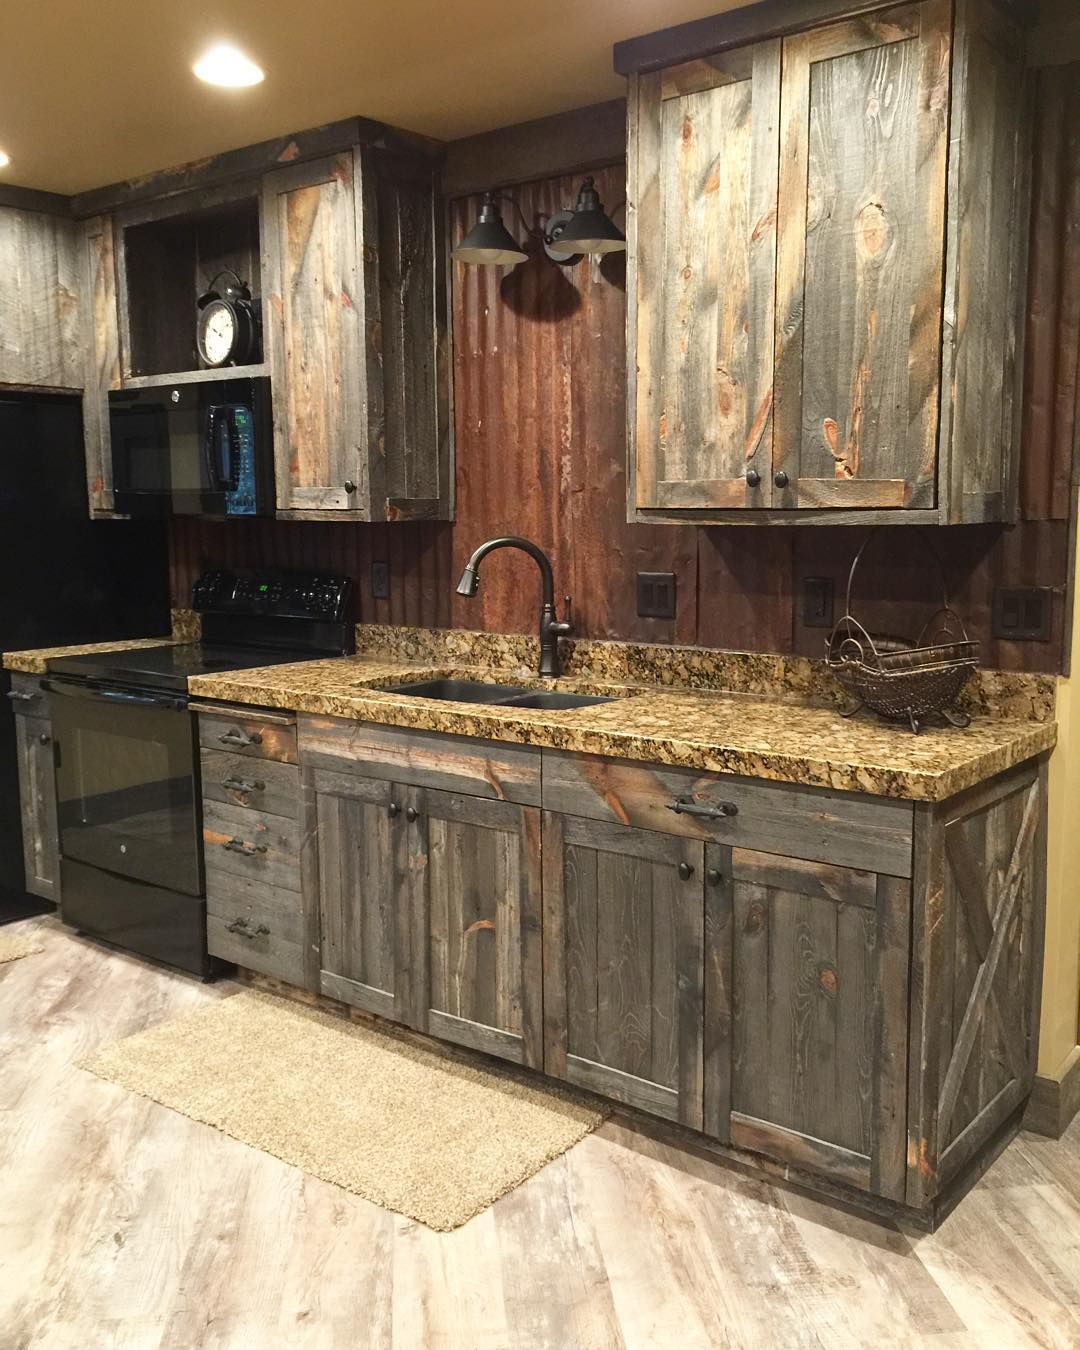 Diy Rustic Backsplash A Little Barnwood Kitchen Cabinets And Corrugated Steel